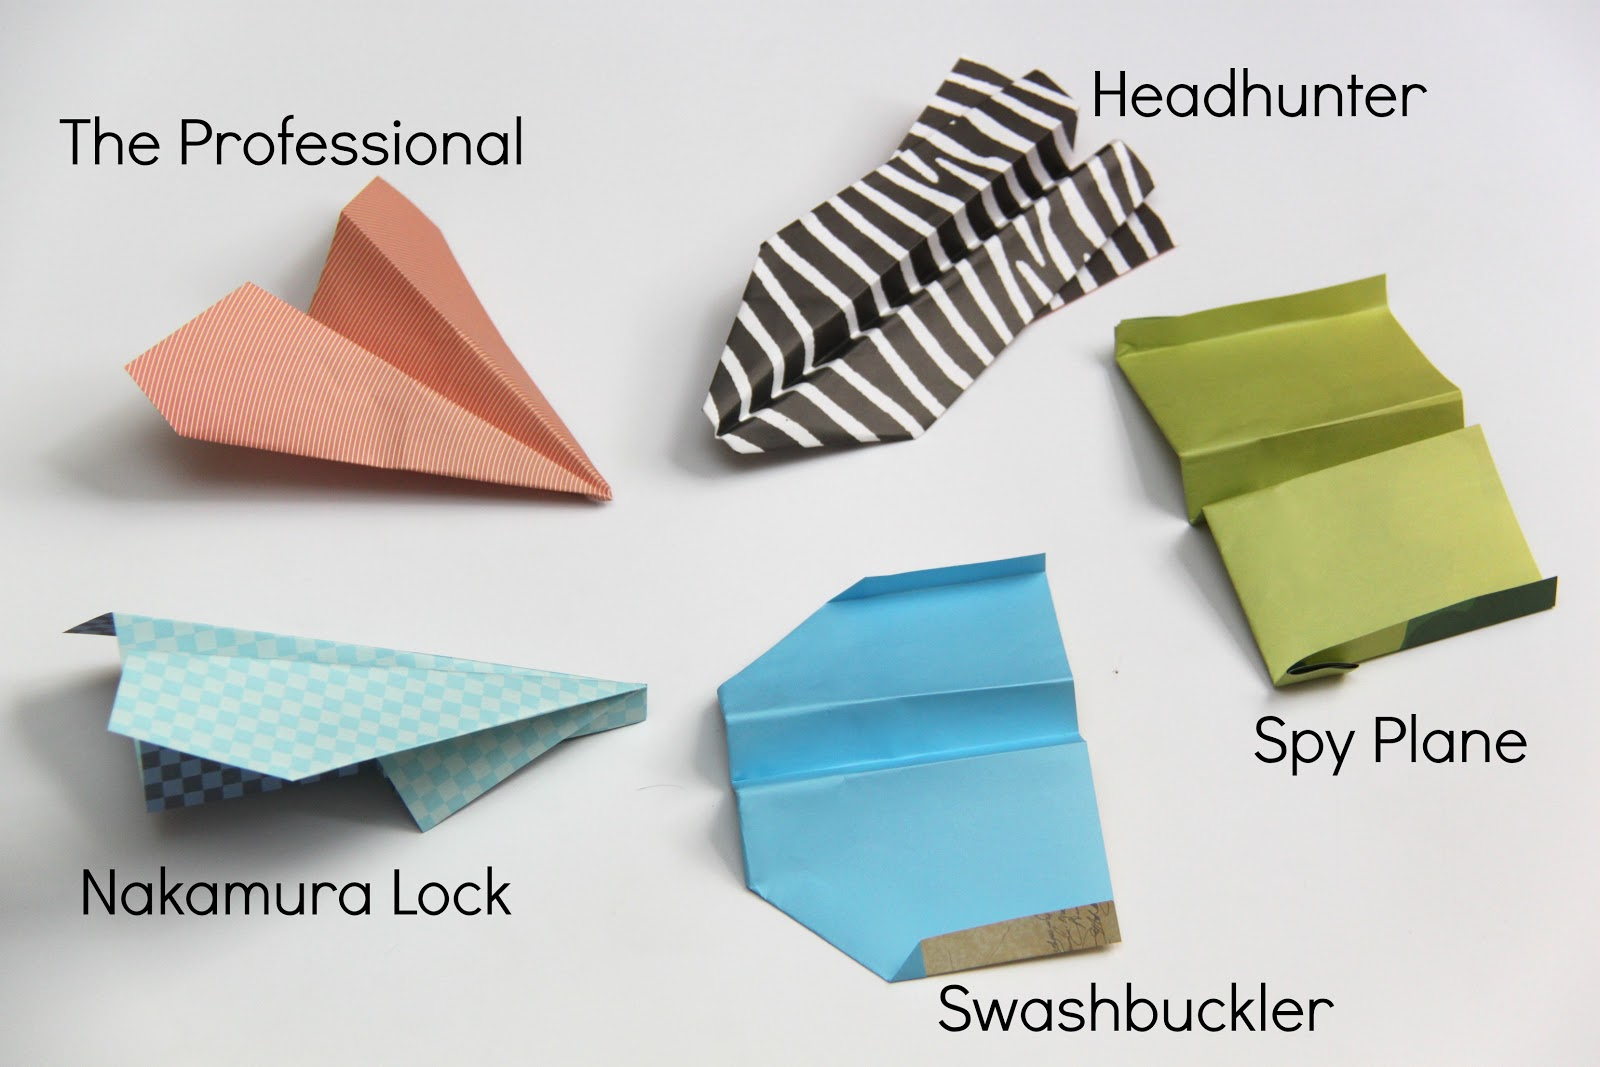 Are You Guys Paper Airplane Makers Well I Have To Admit That Was Never Very Good At Making Always Had One Style Of Plane